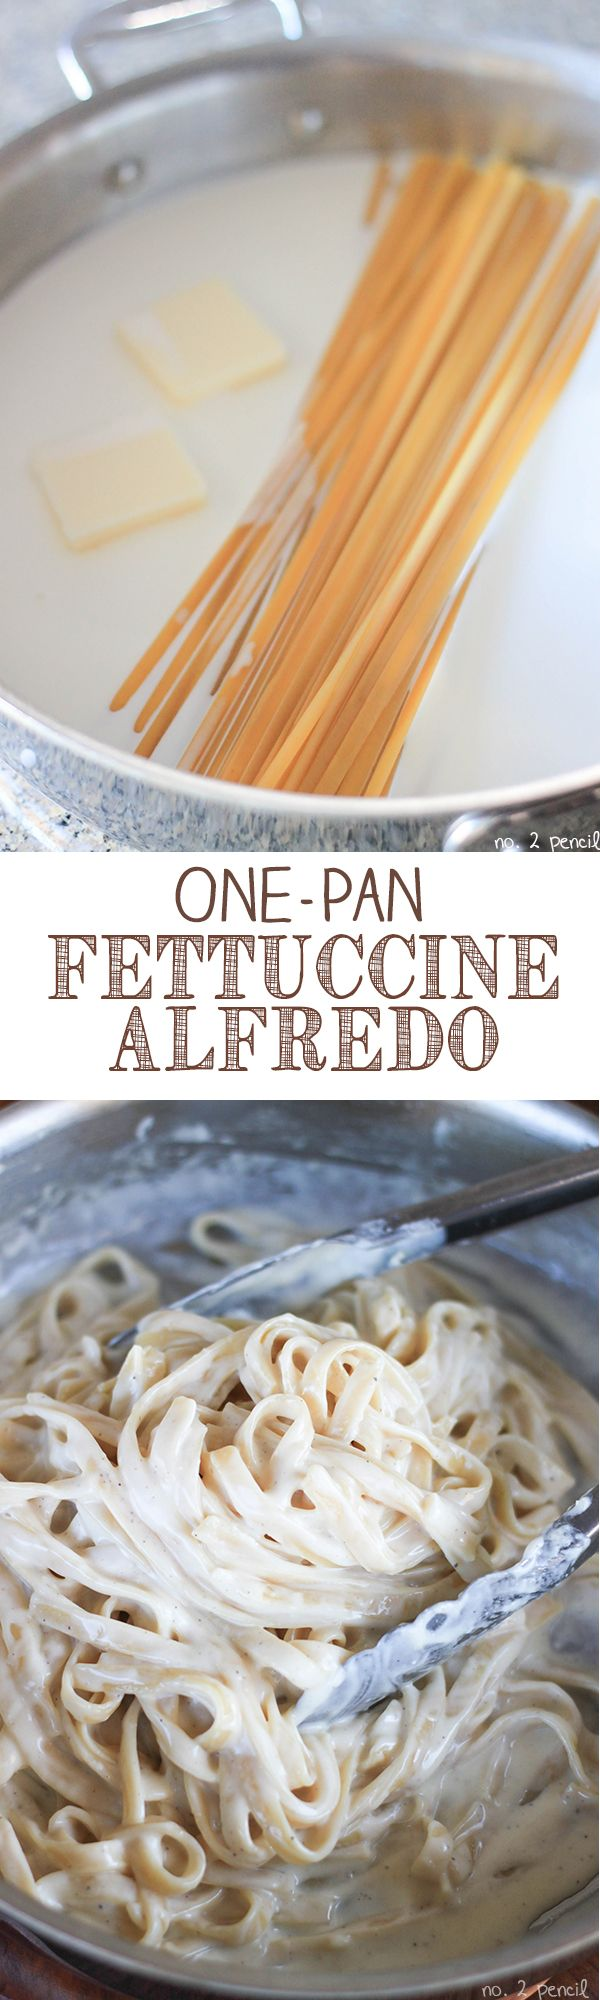 Easy One Pan Fettuccine Alfredo--Even the pasta cooks in the same pan!: Easy Pasta Recipe, Food Pasta, One Pan Fettuccine, Pasta Cooking, Fettuccine Alfredo, Pasta S, 4 5 People, Food Drinks, Feed 4 5